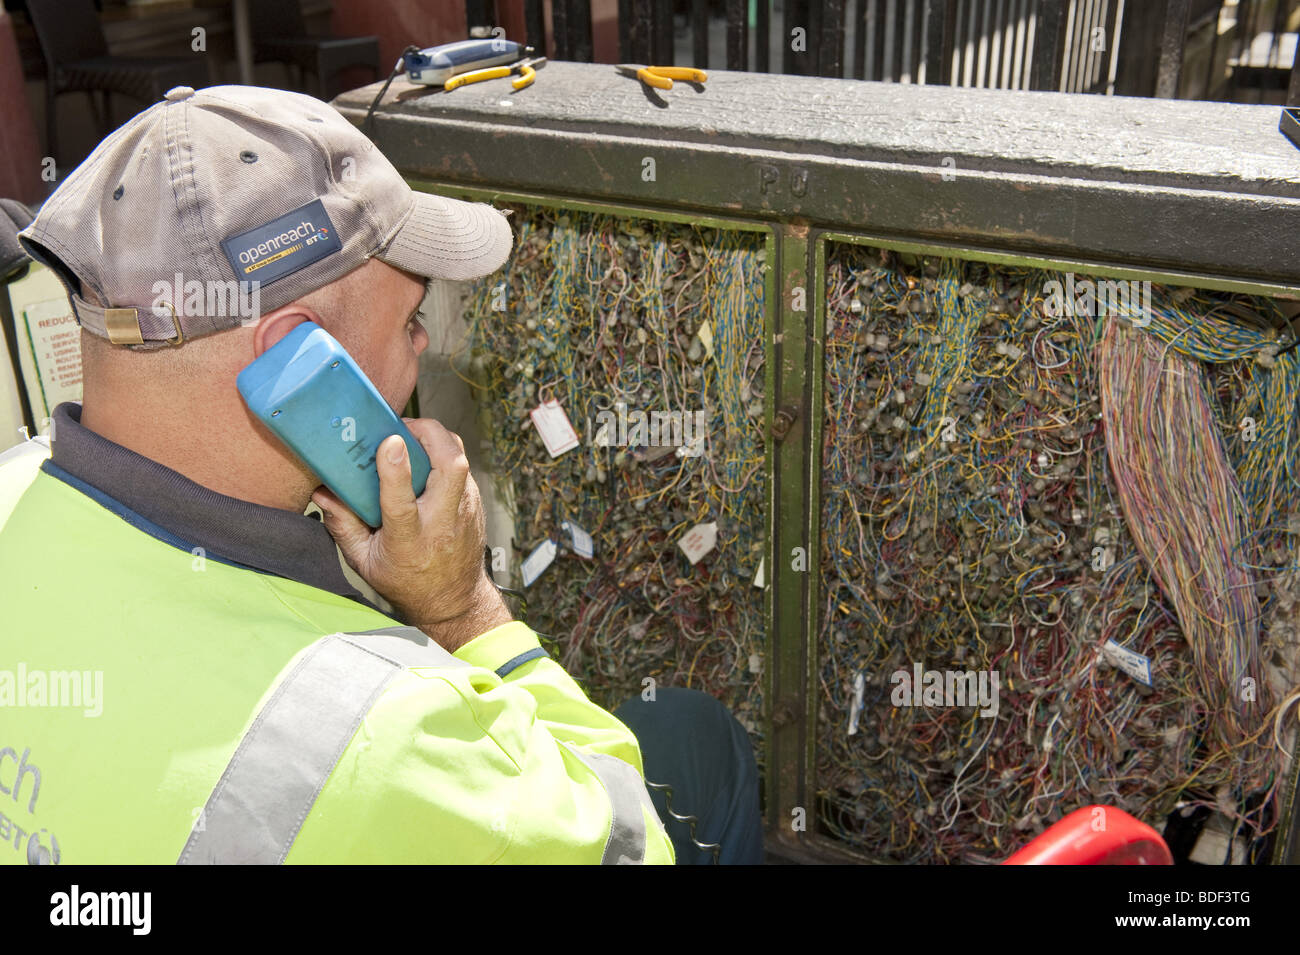 Groovy Looking Over The Shoulder Of Bt Telecommunications Engineer On Phone Wiring Digital Resources Indicompassionincorg